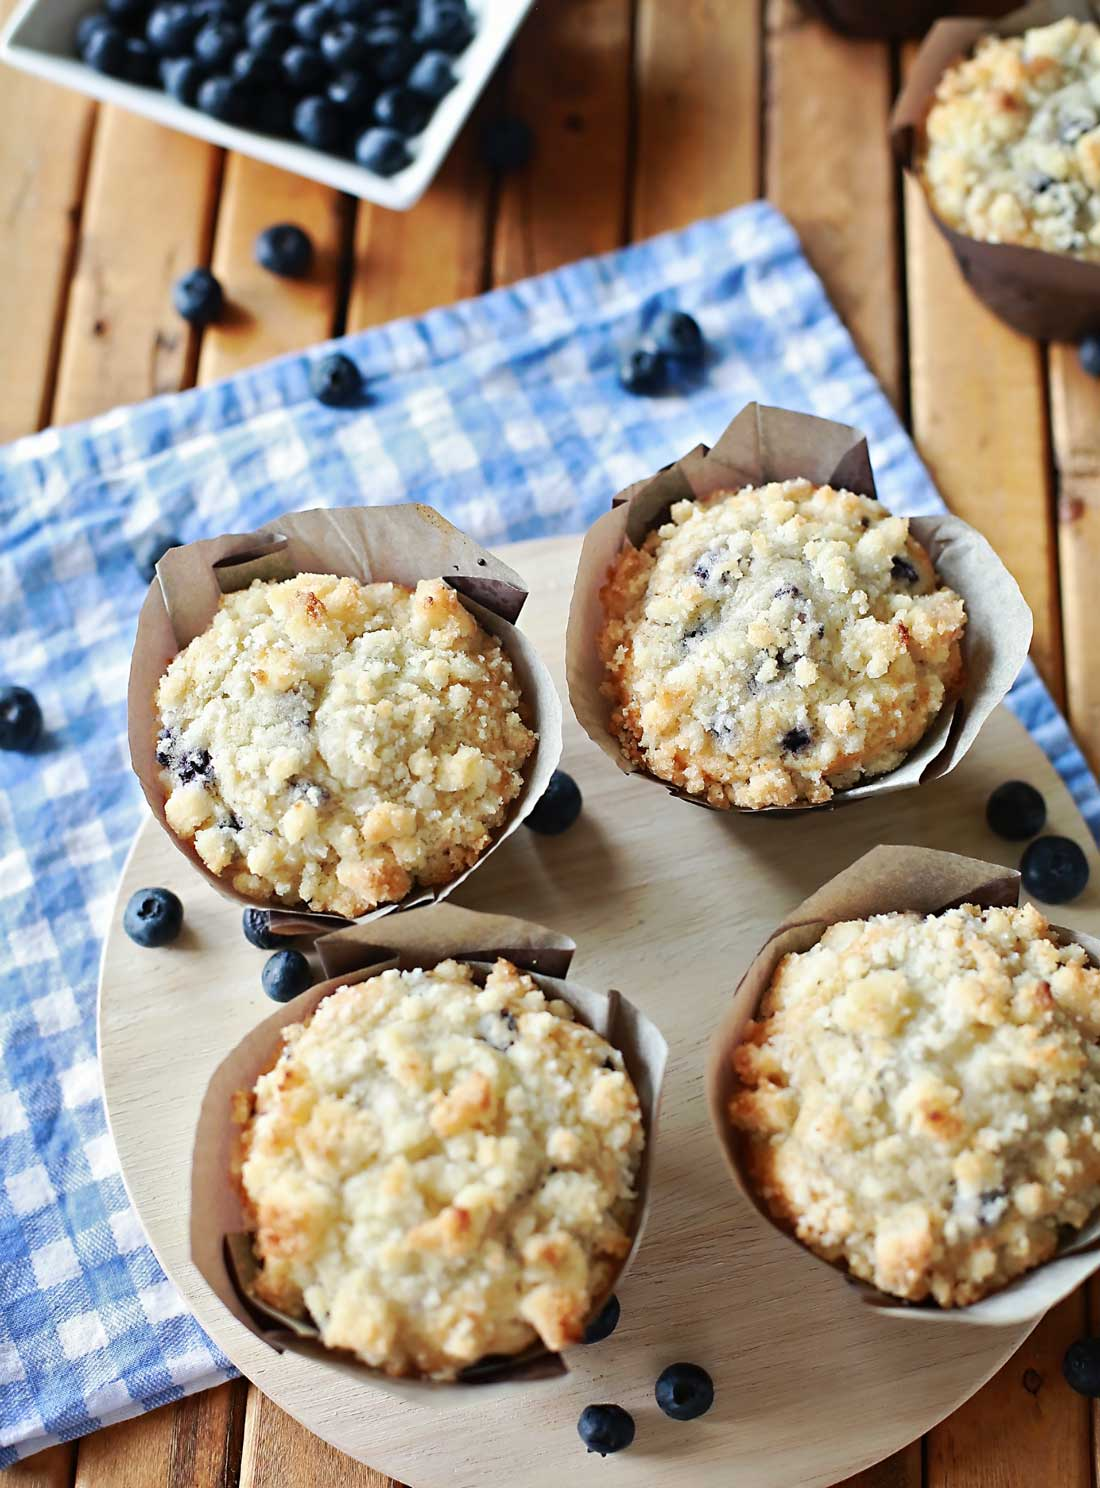 Blueberry Muffins with Cream Cheese and Streusel by Flirting with Flavor